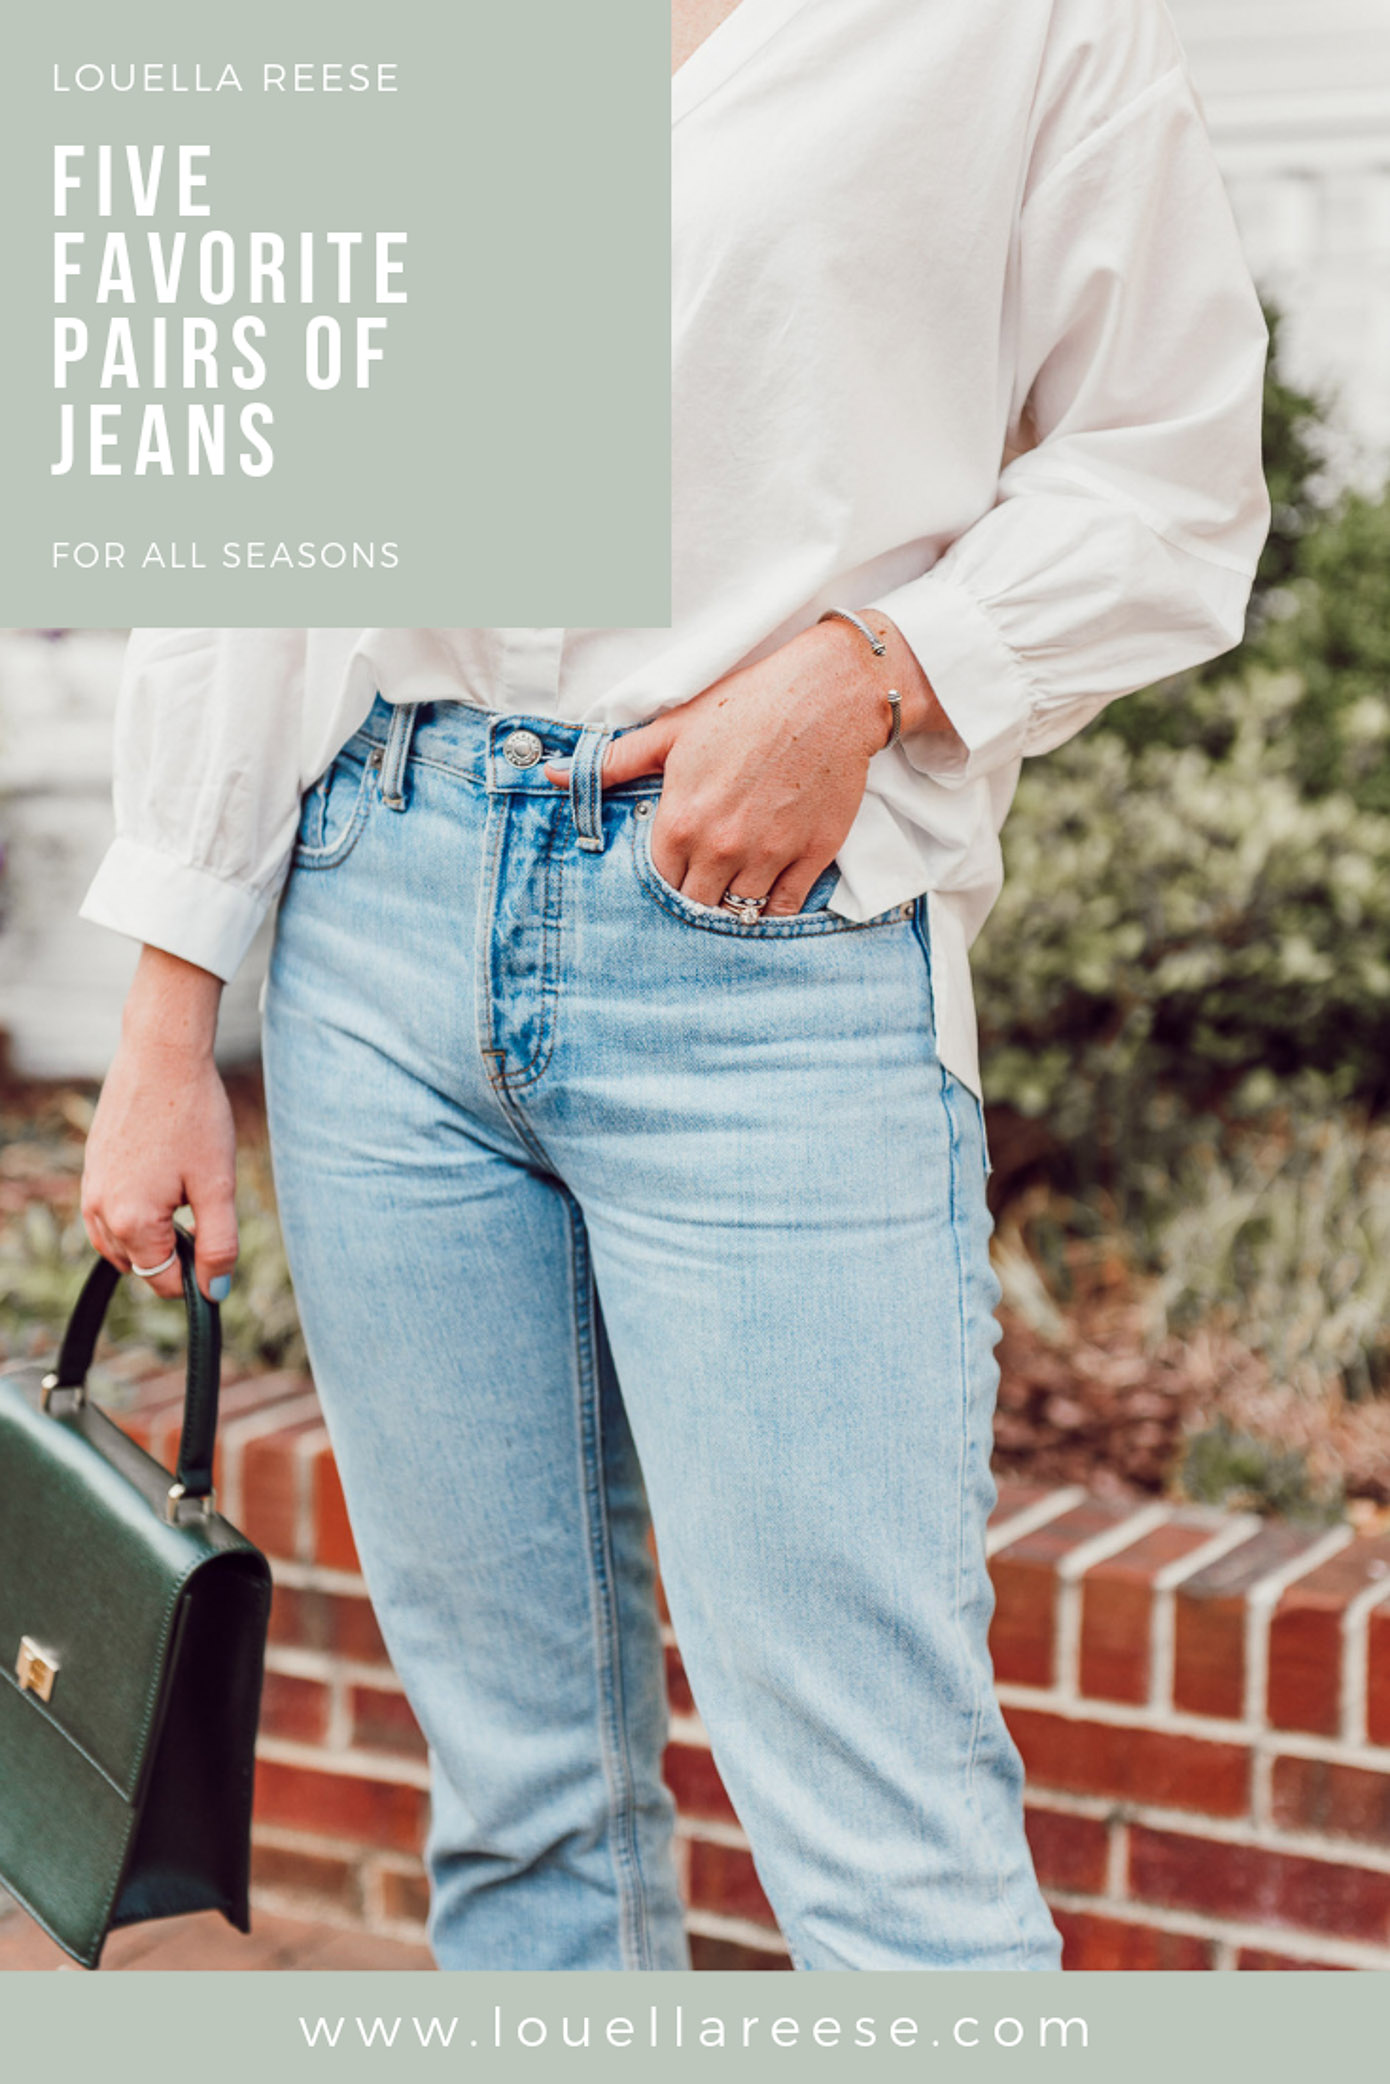 Five Favorite Pairs of Jeans | The Best Denim for All Seasons | Louella Reese